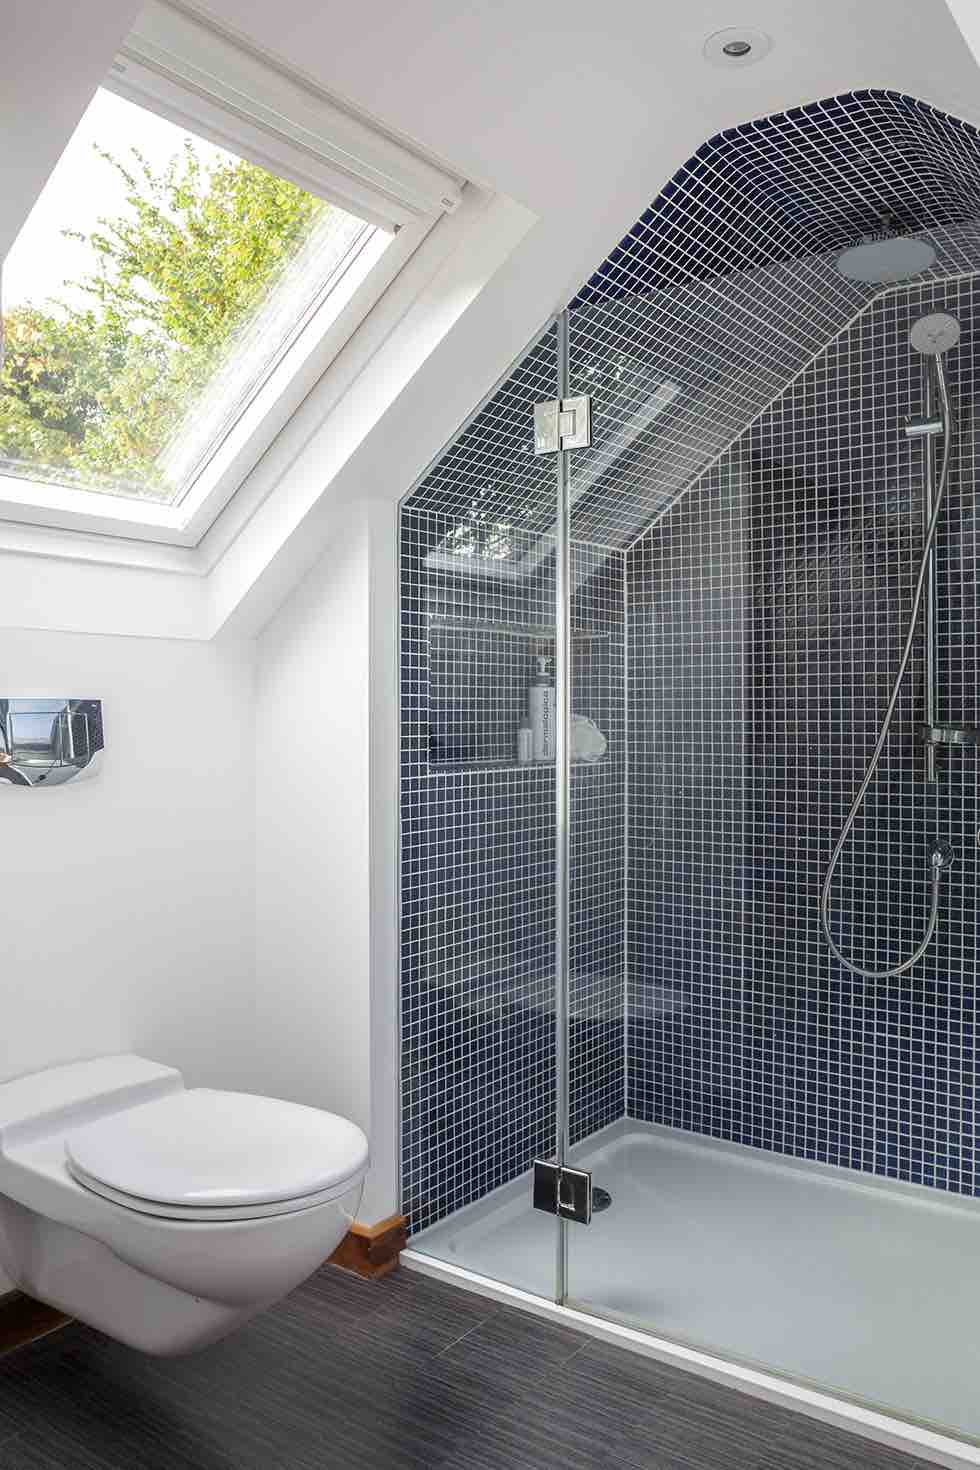 15 bathroom design ideas homebuilding renovating for Small bathroom with sloped ceiling